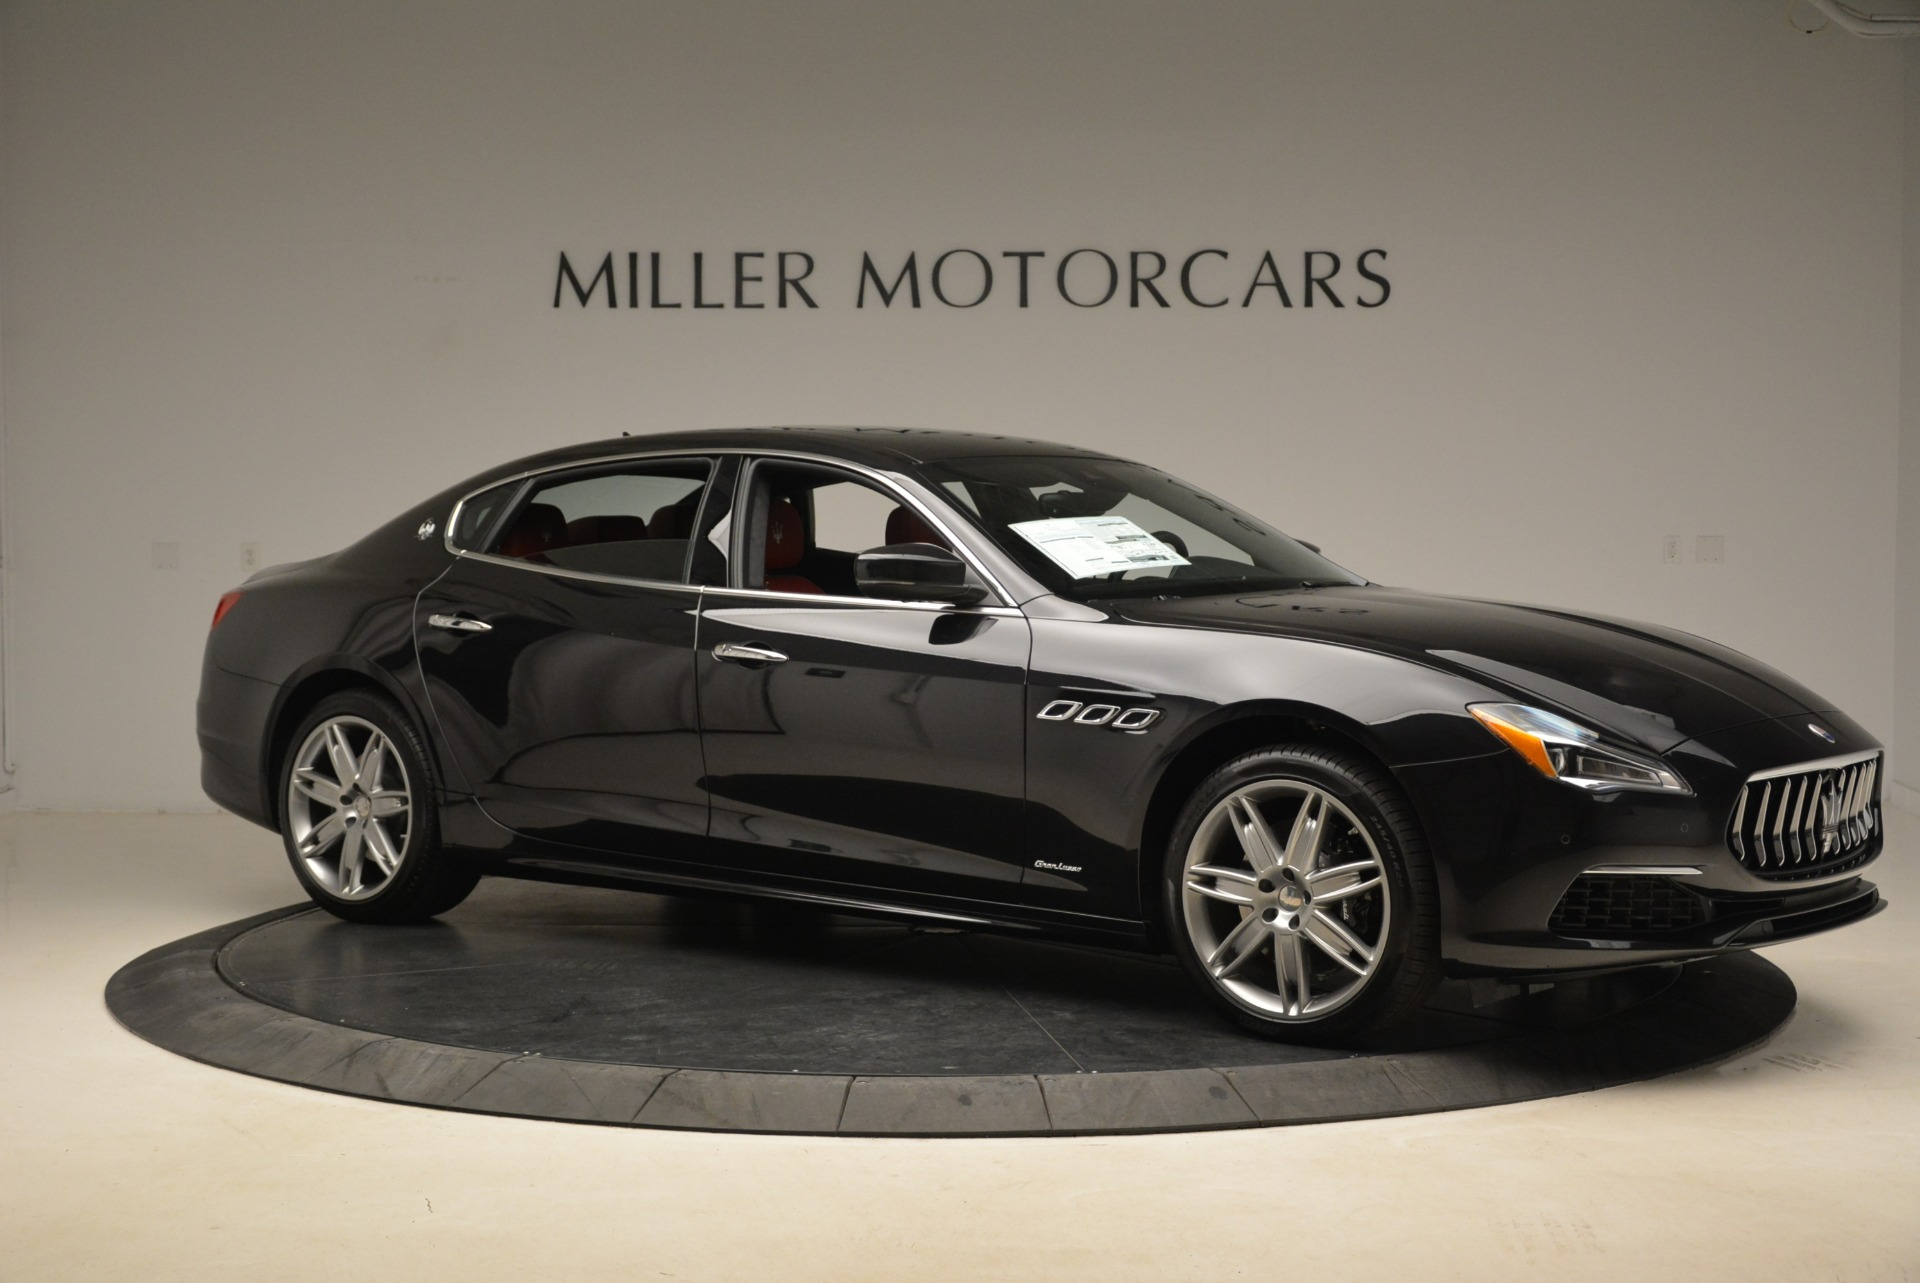 New 2018 Maserati Quattroporte S Q4 GranLusso For Sale In Greenwich, CT 2293_p10